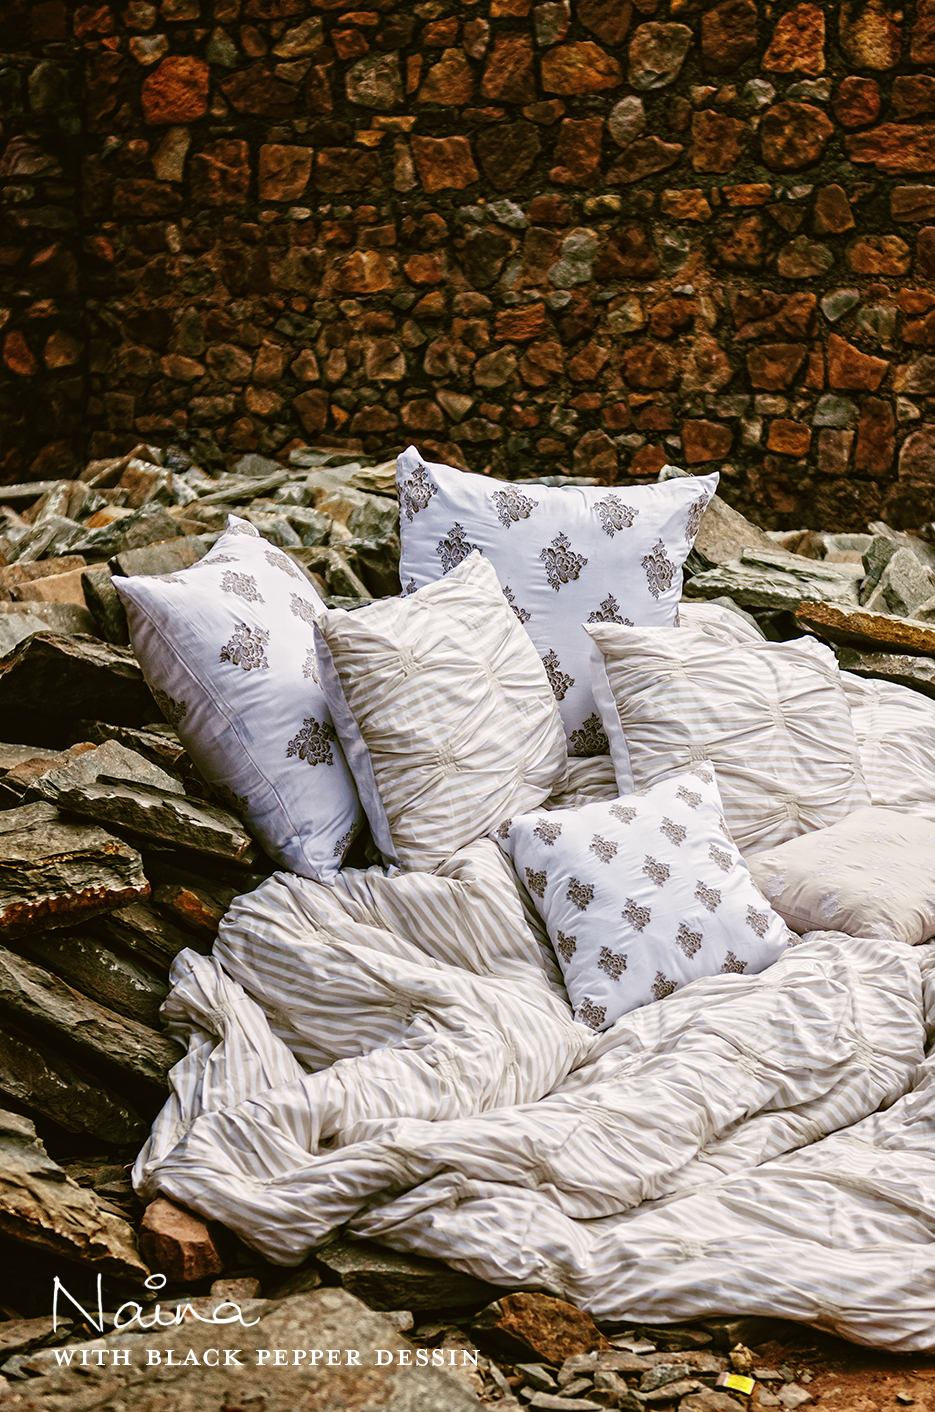 Black Pepper Dessin | Tableware, Cushions & Bed Linen. Photography by professional Indian lifestyle photographer Naina Redhu of Naina.co